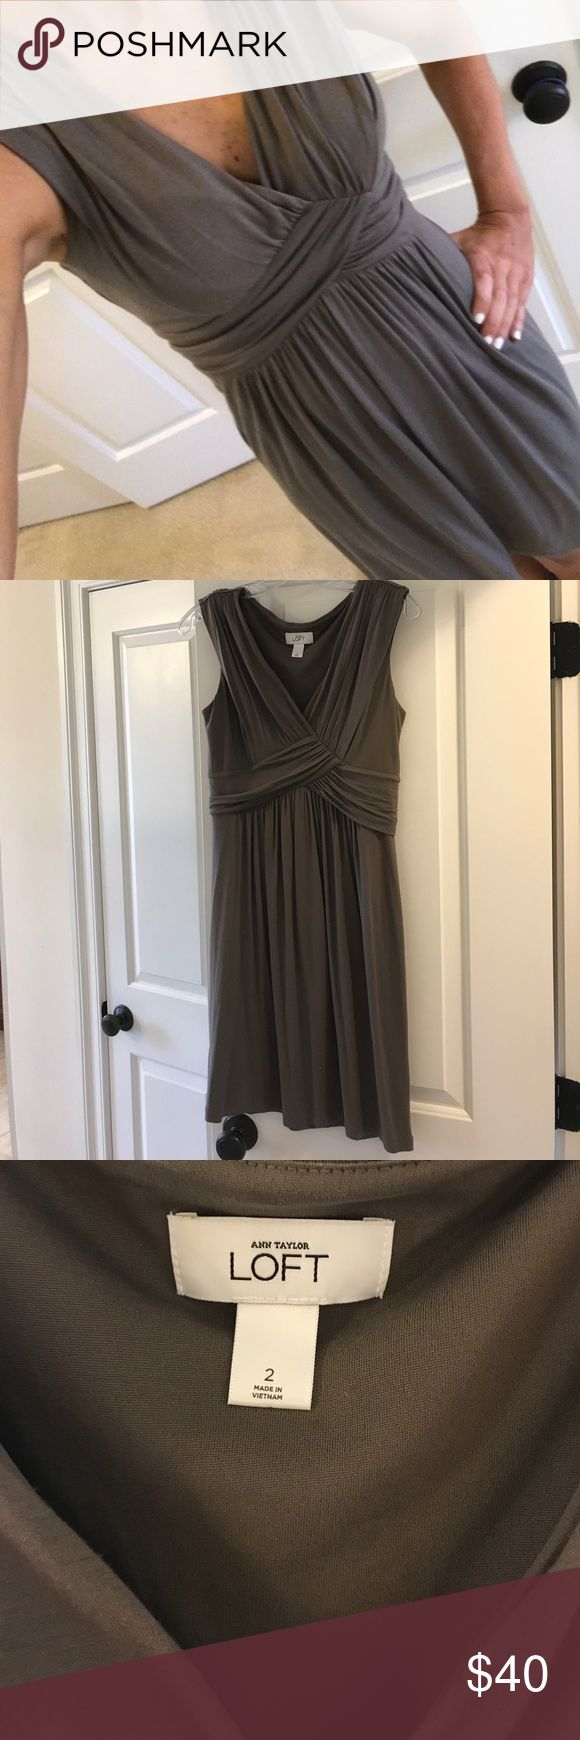 Anne Taylor Loft women's dress Anne Taylor Loft women's size 2 dress in mocha (light brown). Smoke-free, pet-free home. Only been worn a few times. Great condition. Super stretchy comfortable dress. Could be great for fall with a cardigan on top or nice for the summer with wedges. Dress it up or down. LOFT Dresses Midi